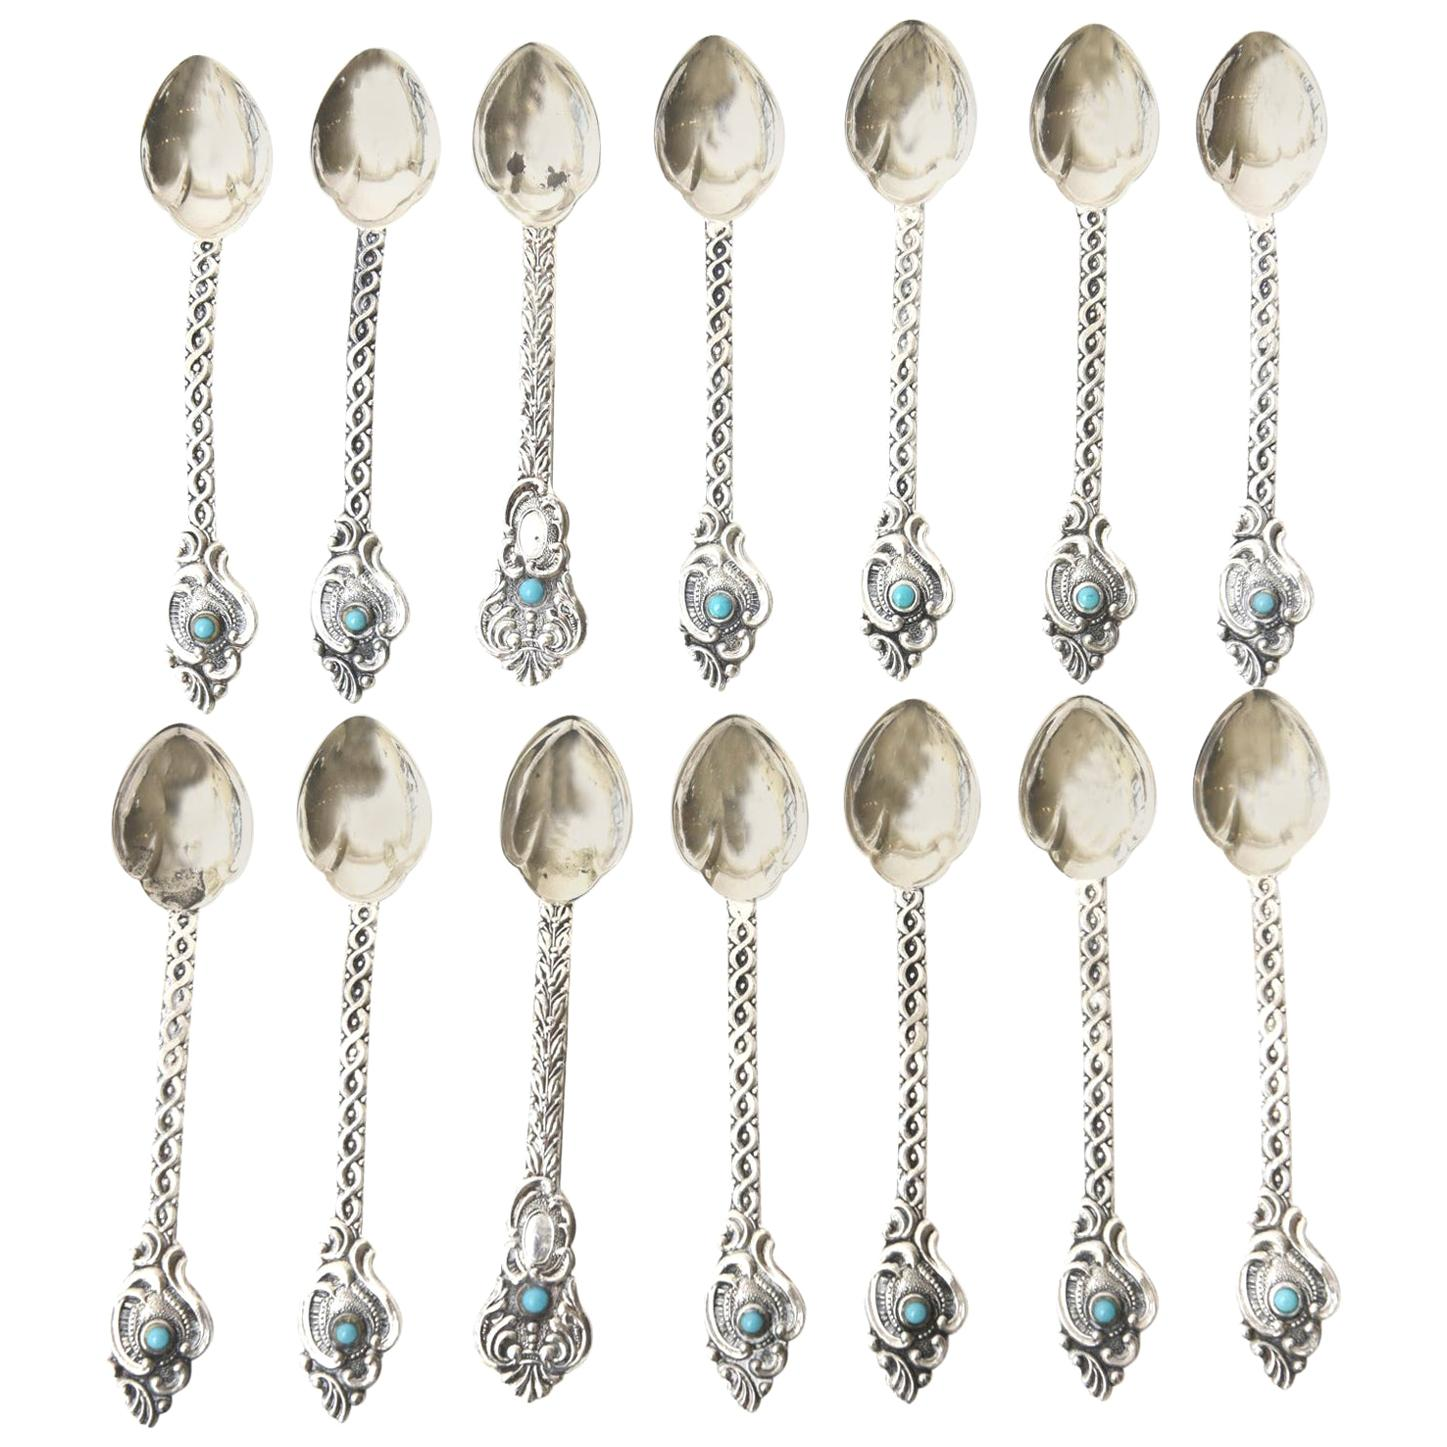 Sterling Silver and Turquoise Demitasse and Serving Spoons Vintage Set of 14